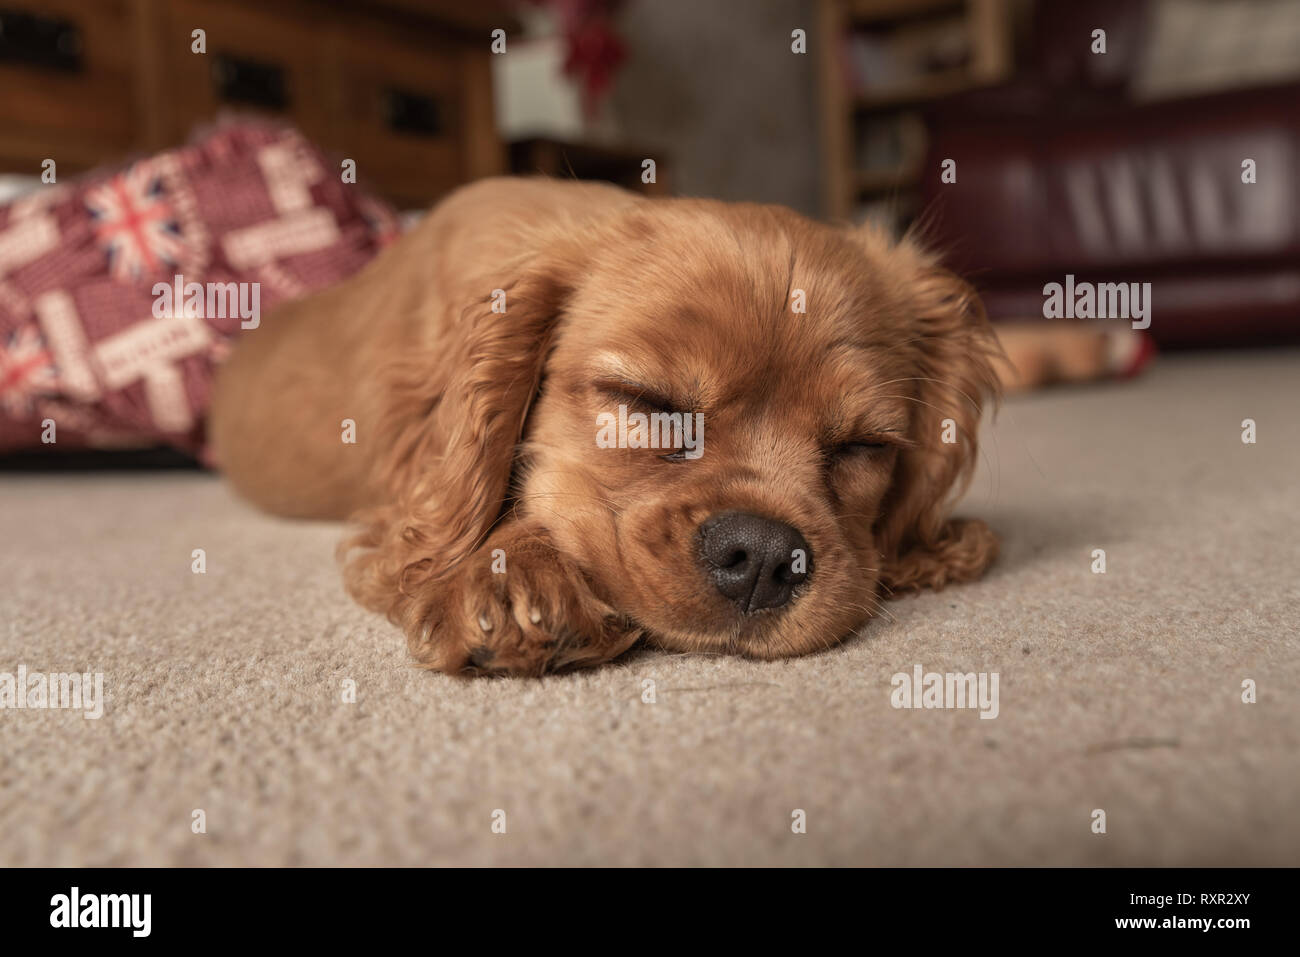 A closeup profile shot of a single isolated ruby Cavalier King Charles Spaniel puppy. - Stock Image